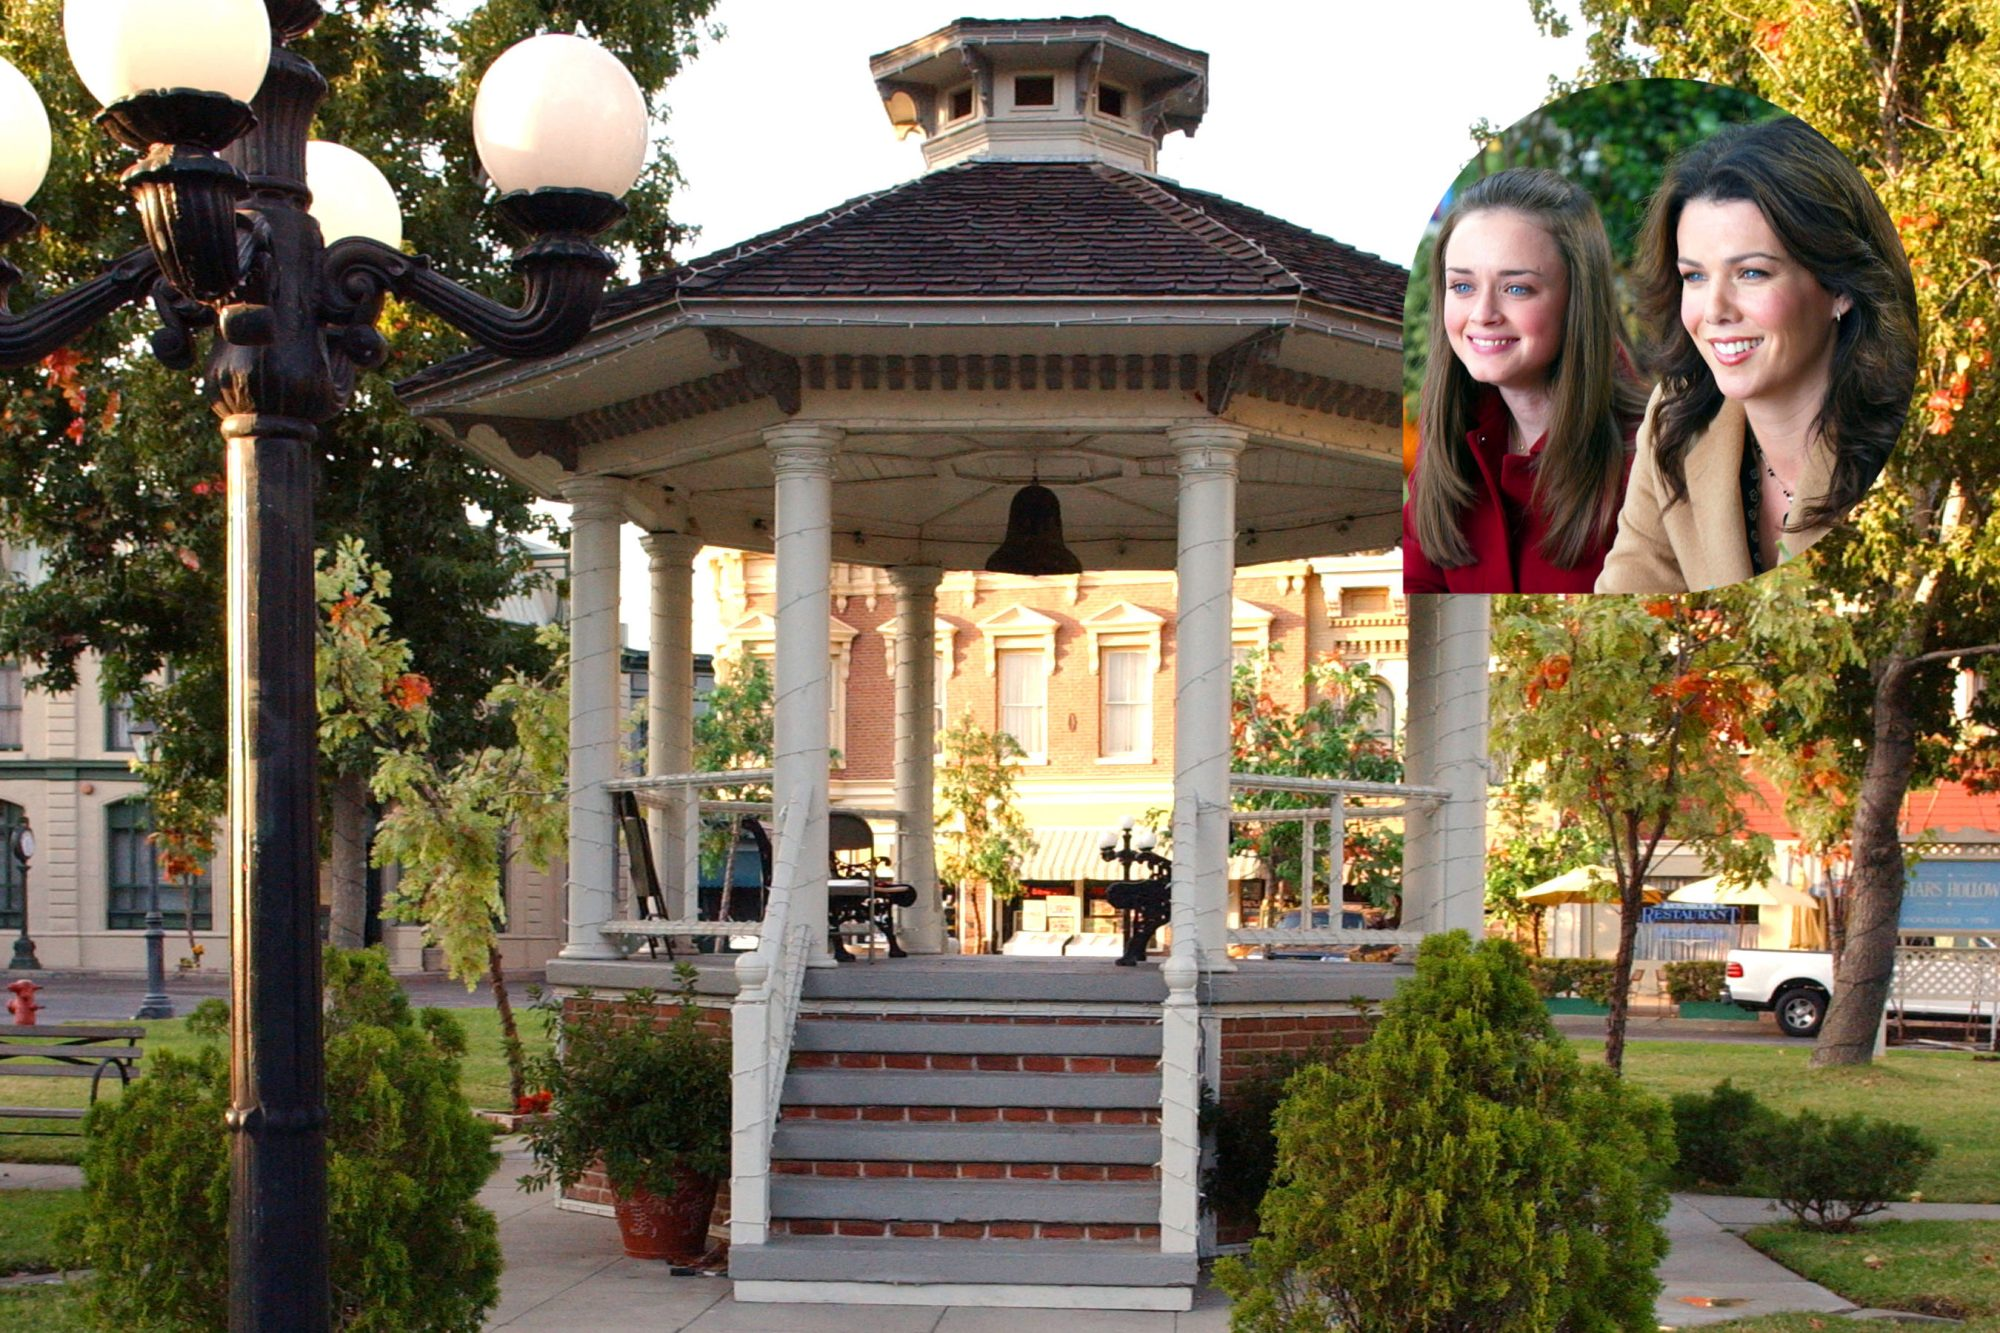 'Gilmore Girls' fan gets proposed to in the real Stars Hollow gazebo